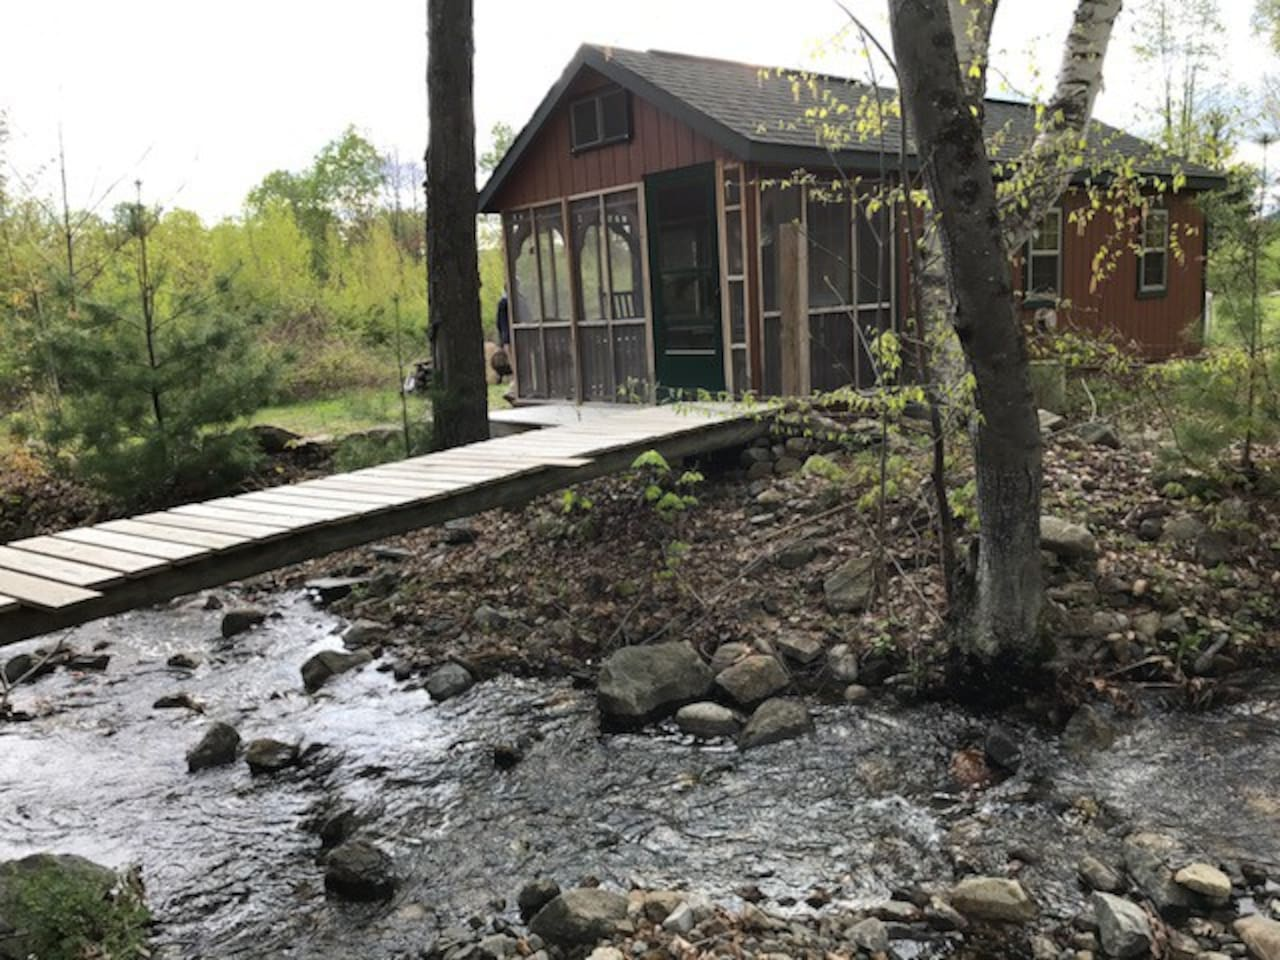 Stream-side cabin, water runs 85% of the year (dry much of the summer)